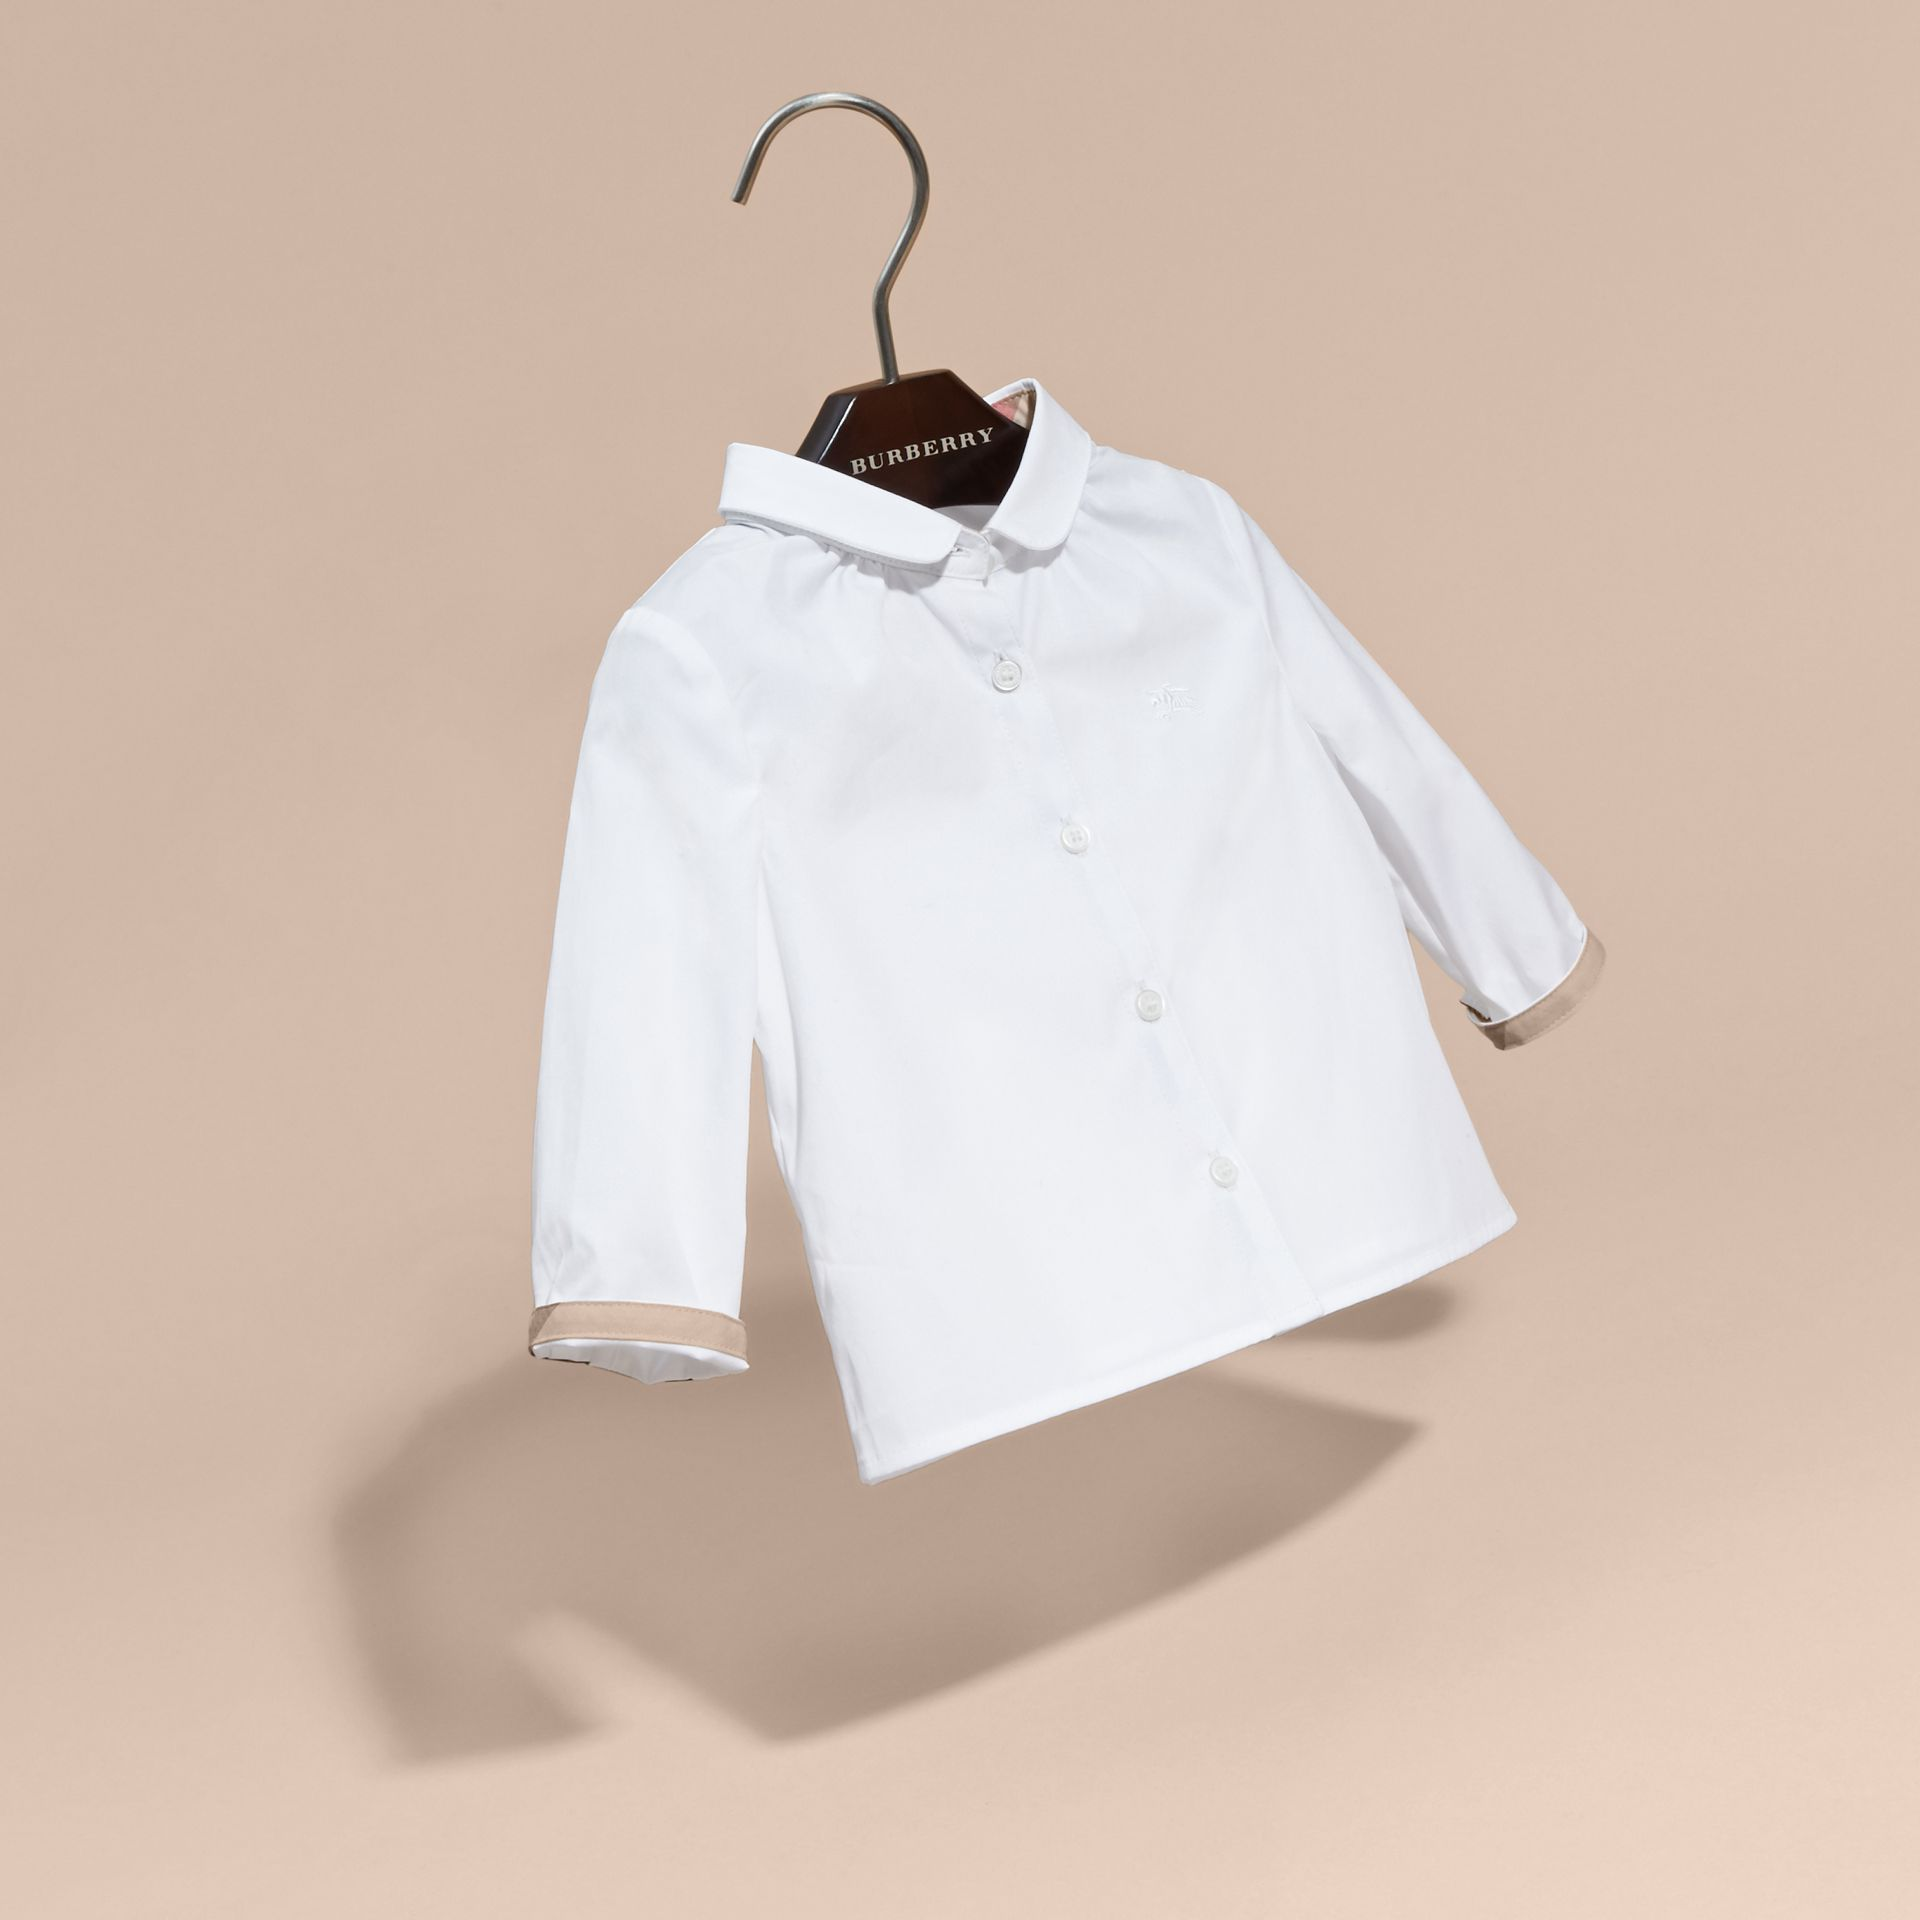 Peter Pan Collar Cotton Shirt | Burberry - gallery image 3